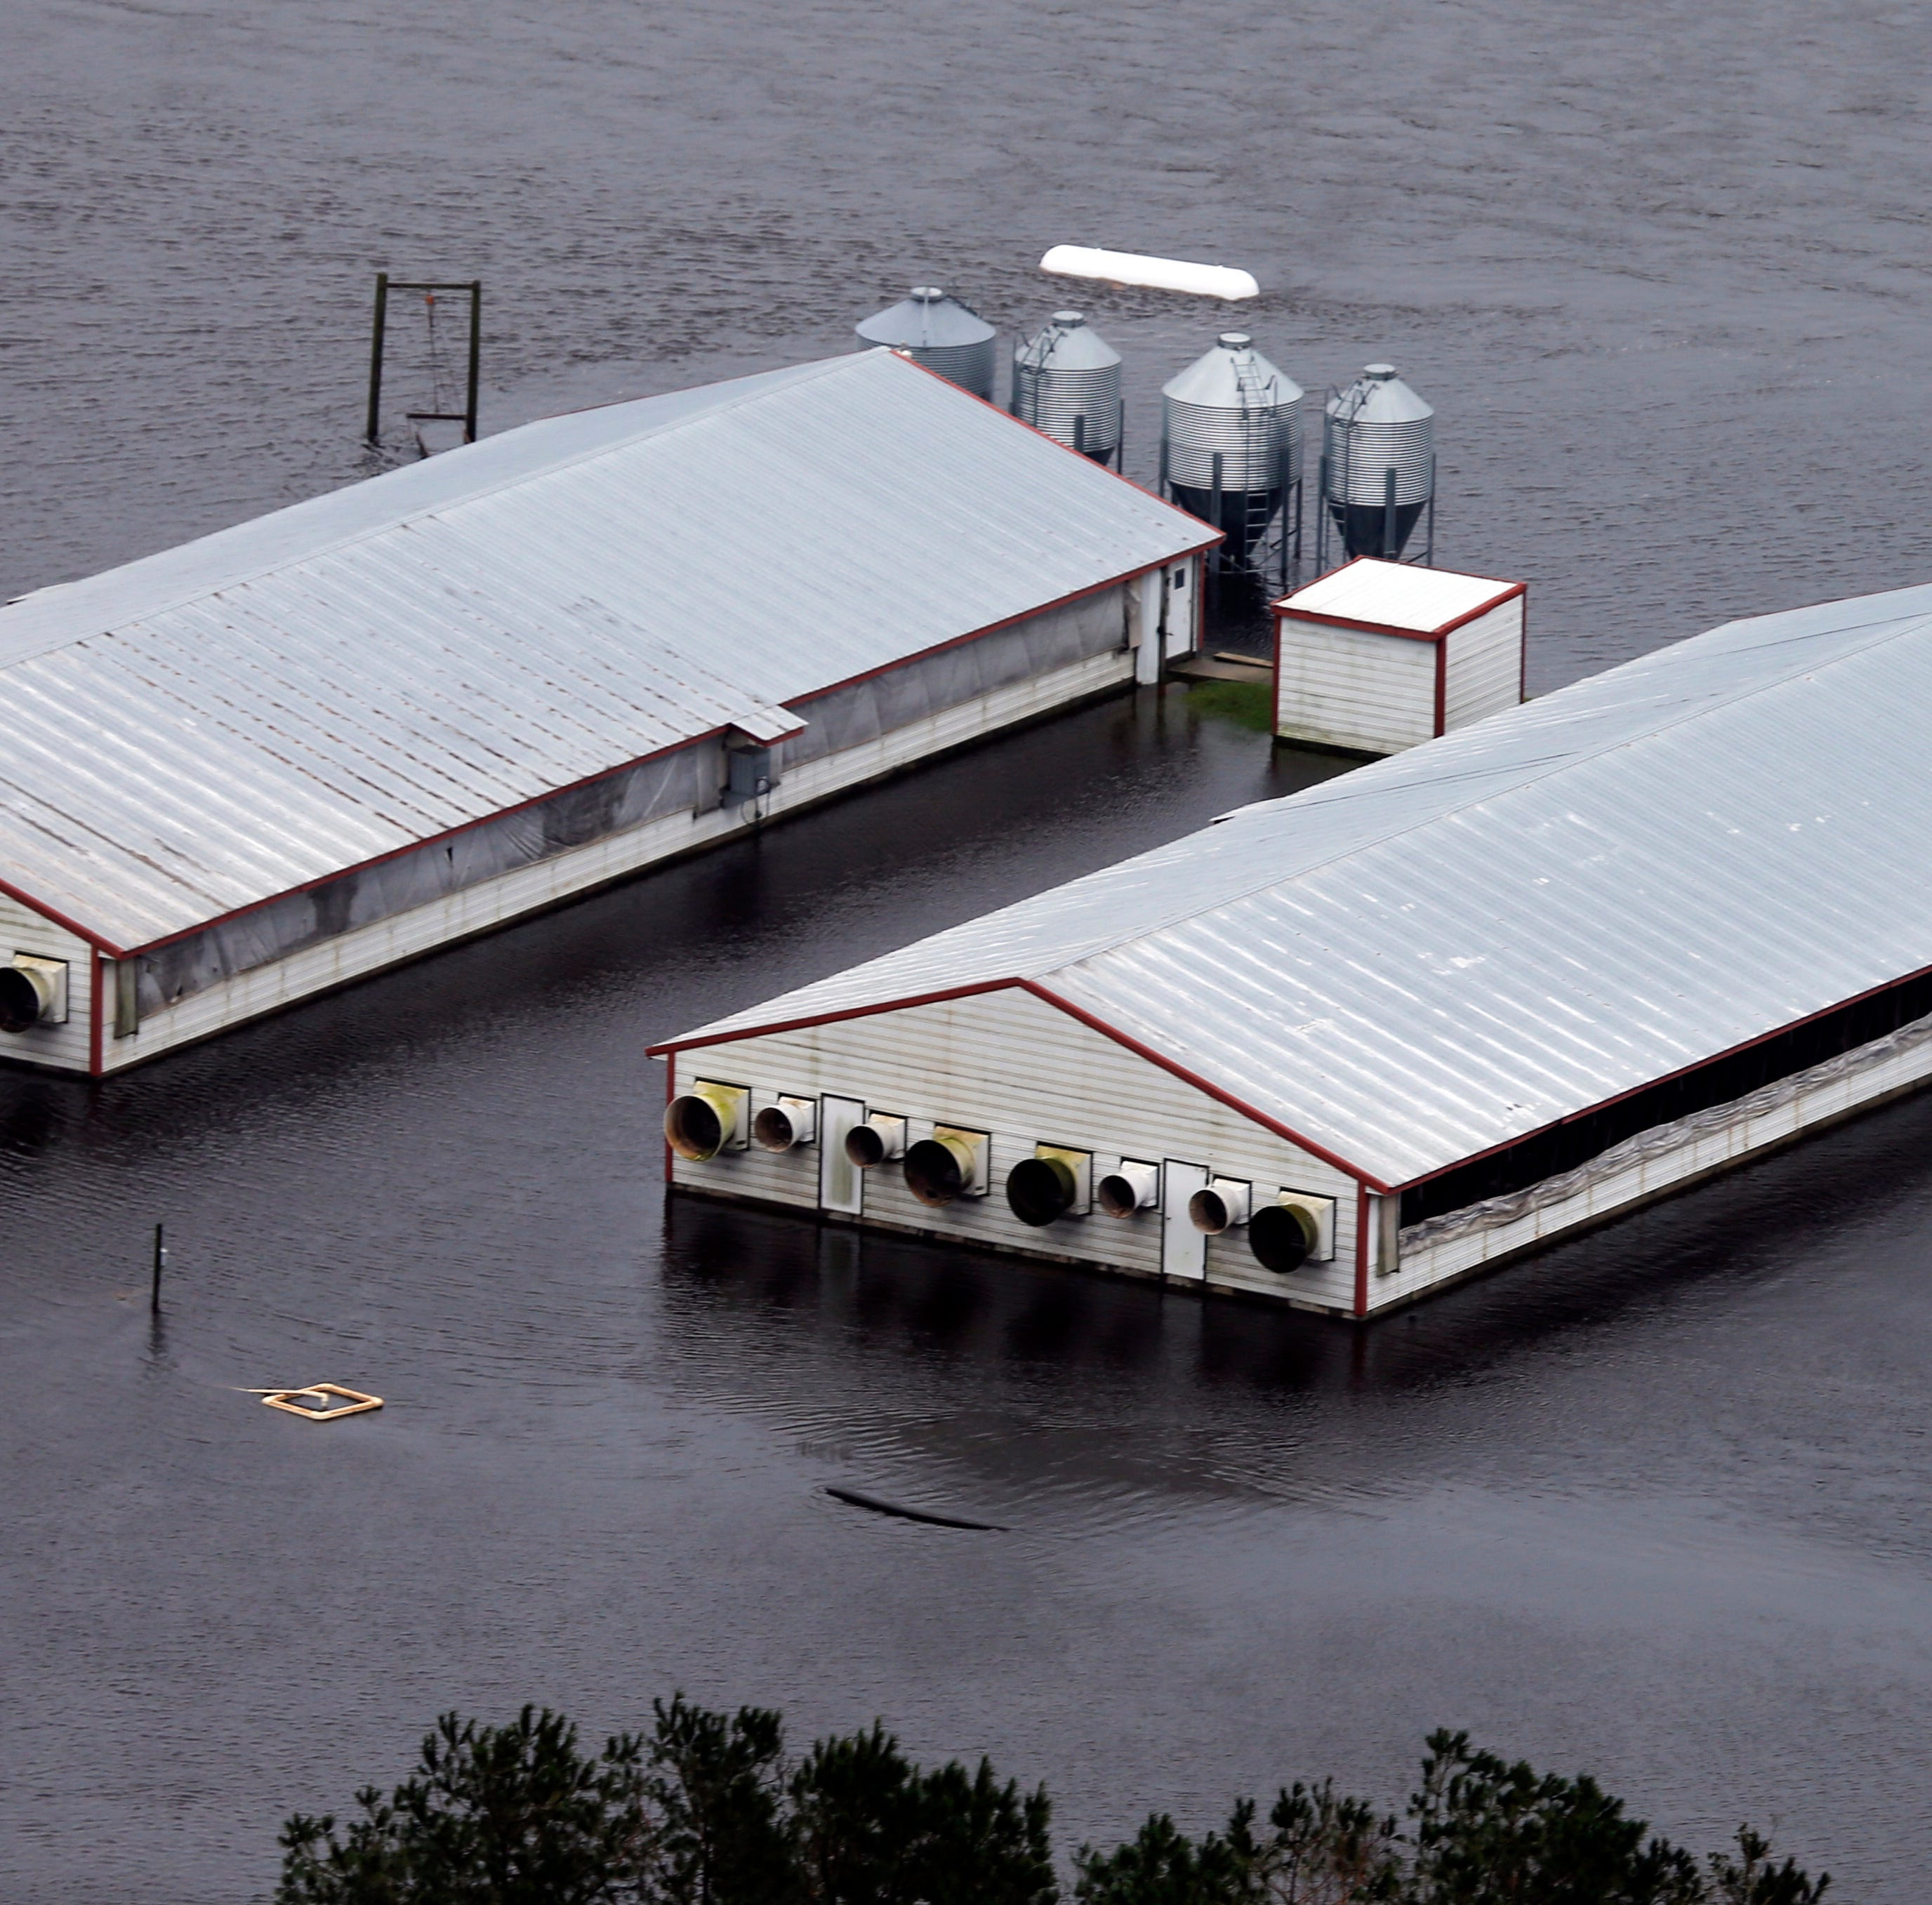 Florence: North Carolina hog farm lagoons breached after historic flooding